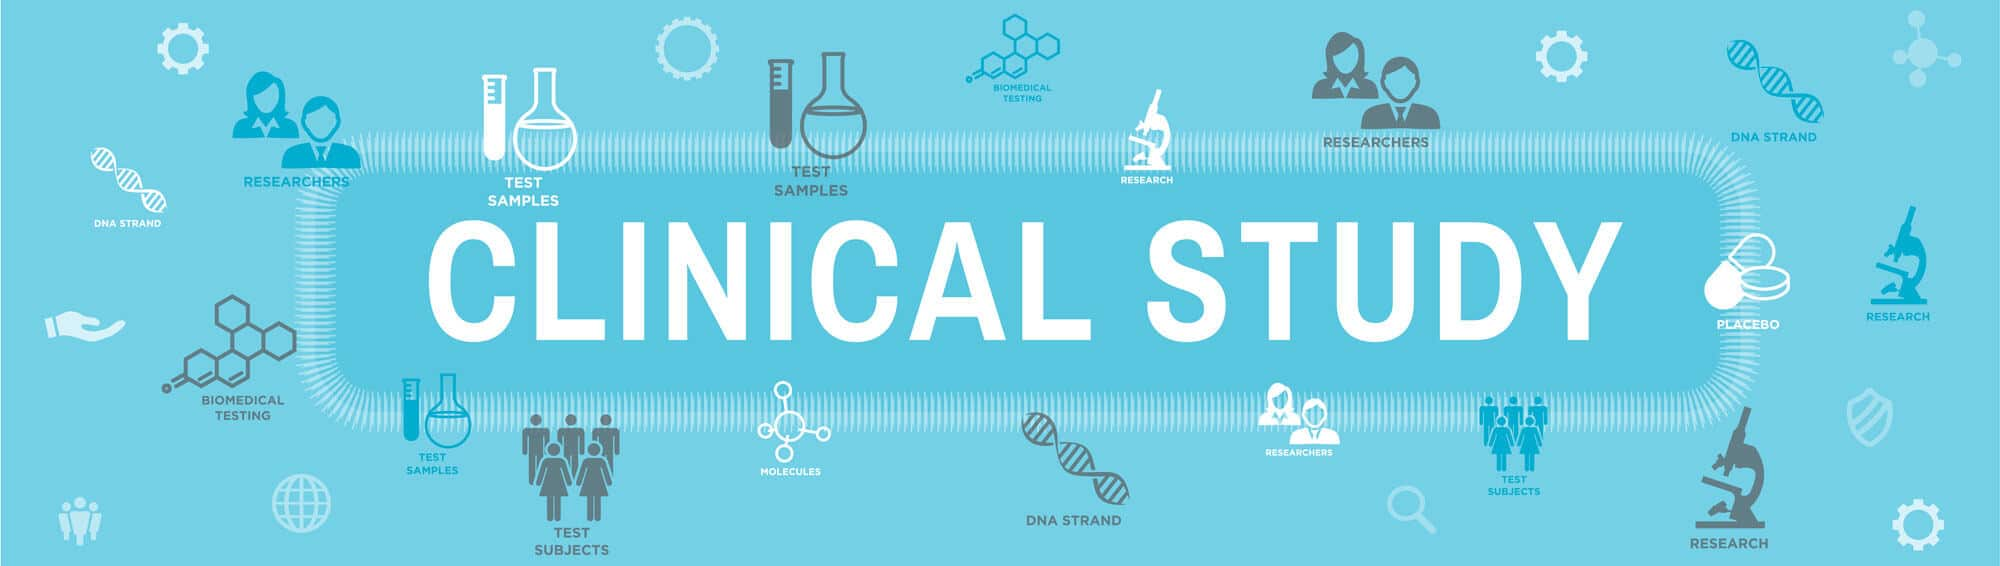 Clinical research